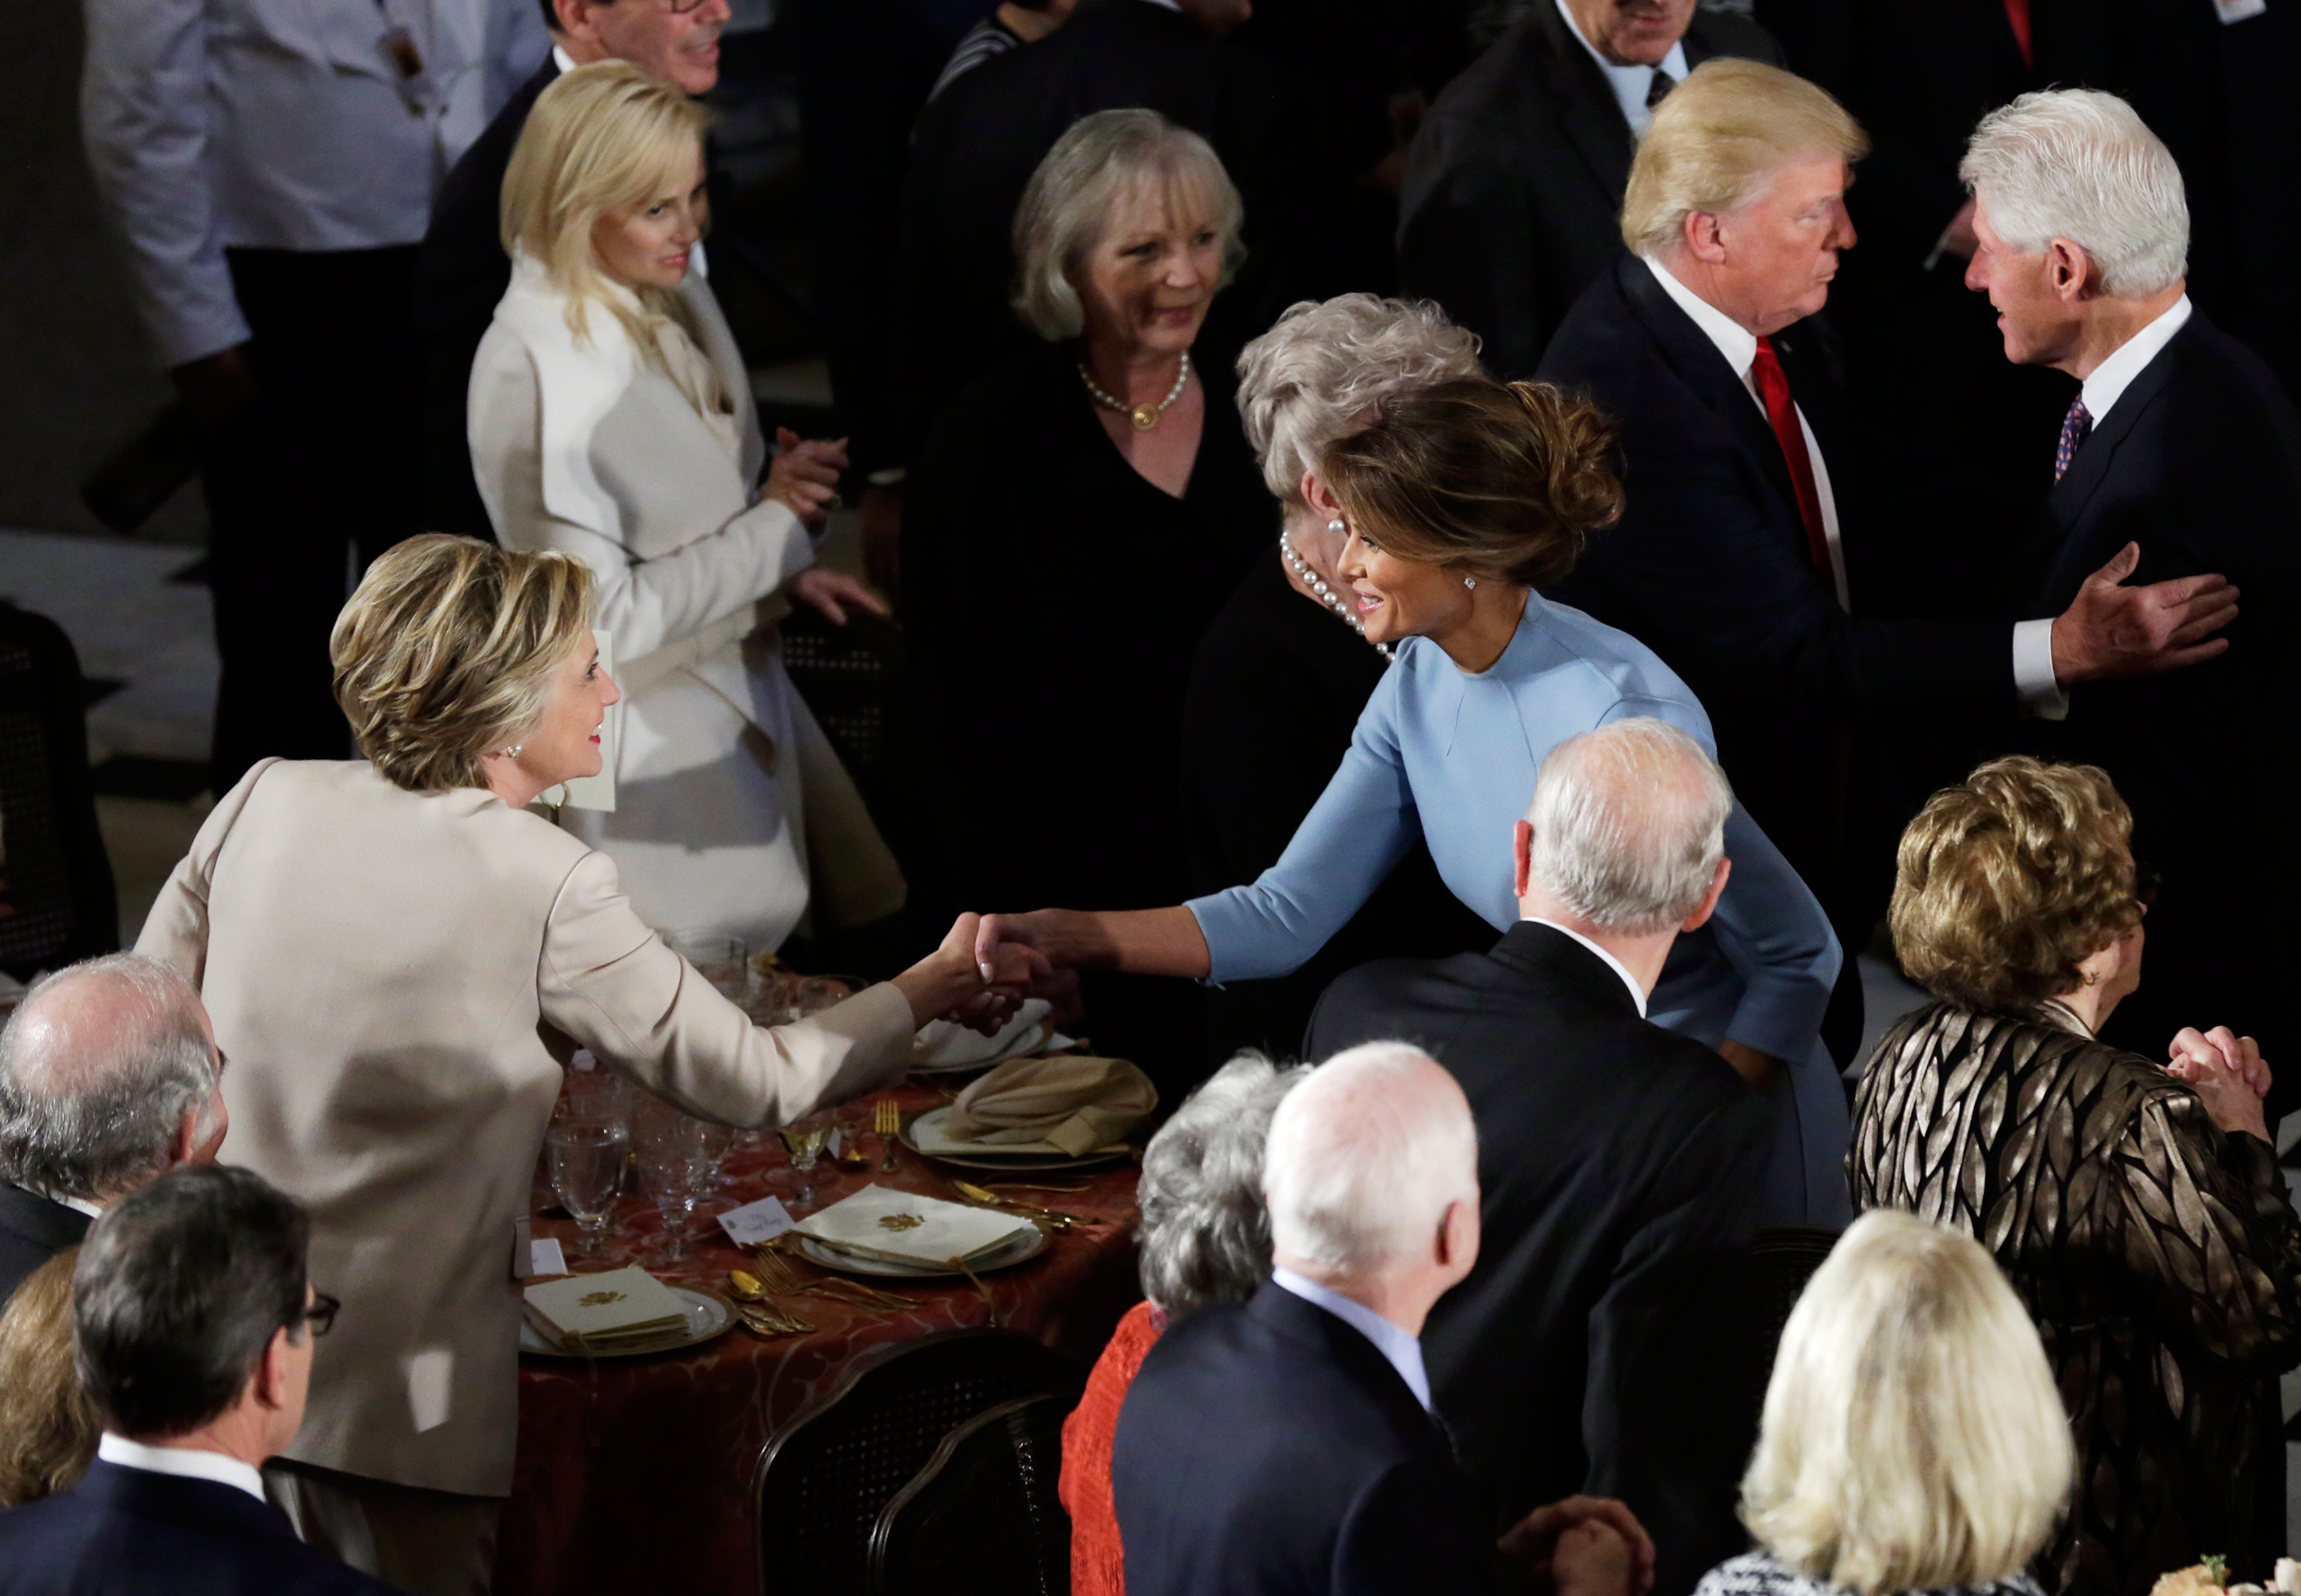 Former Democratic U.S. presidential nominee Hillary Clinton greets First lady Melania Trump as her husband Bill Clinton speaks with President Donald Trump during the Inaugural luncheon at the National Statuary Hall in Washington on Jan. 20, 2017.